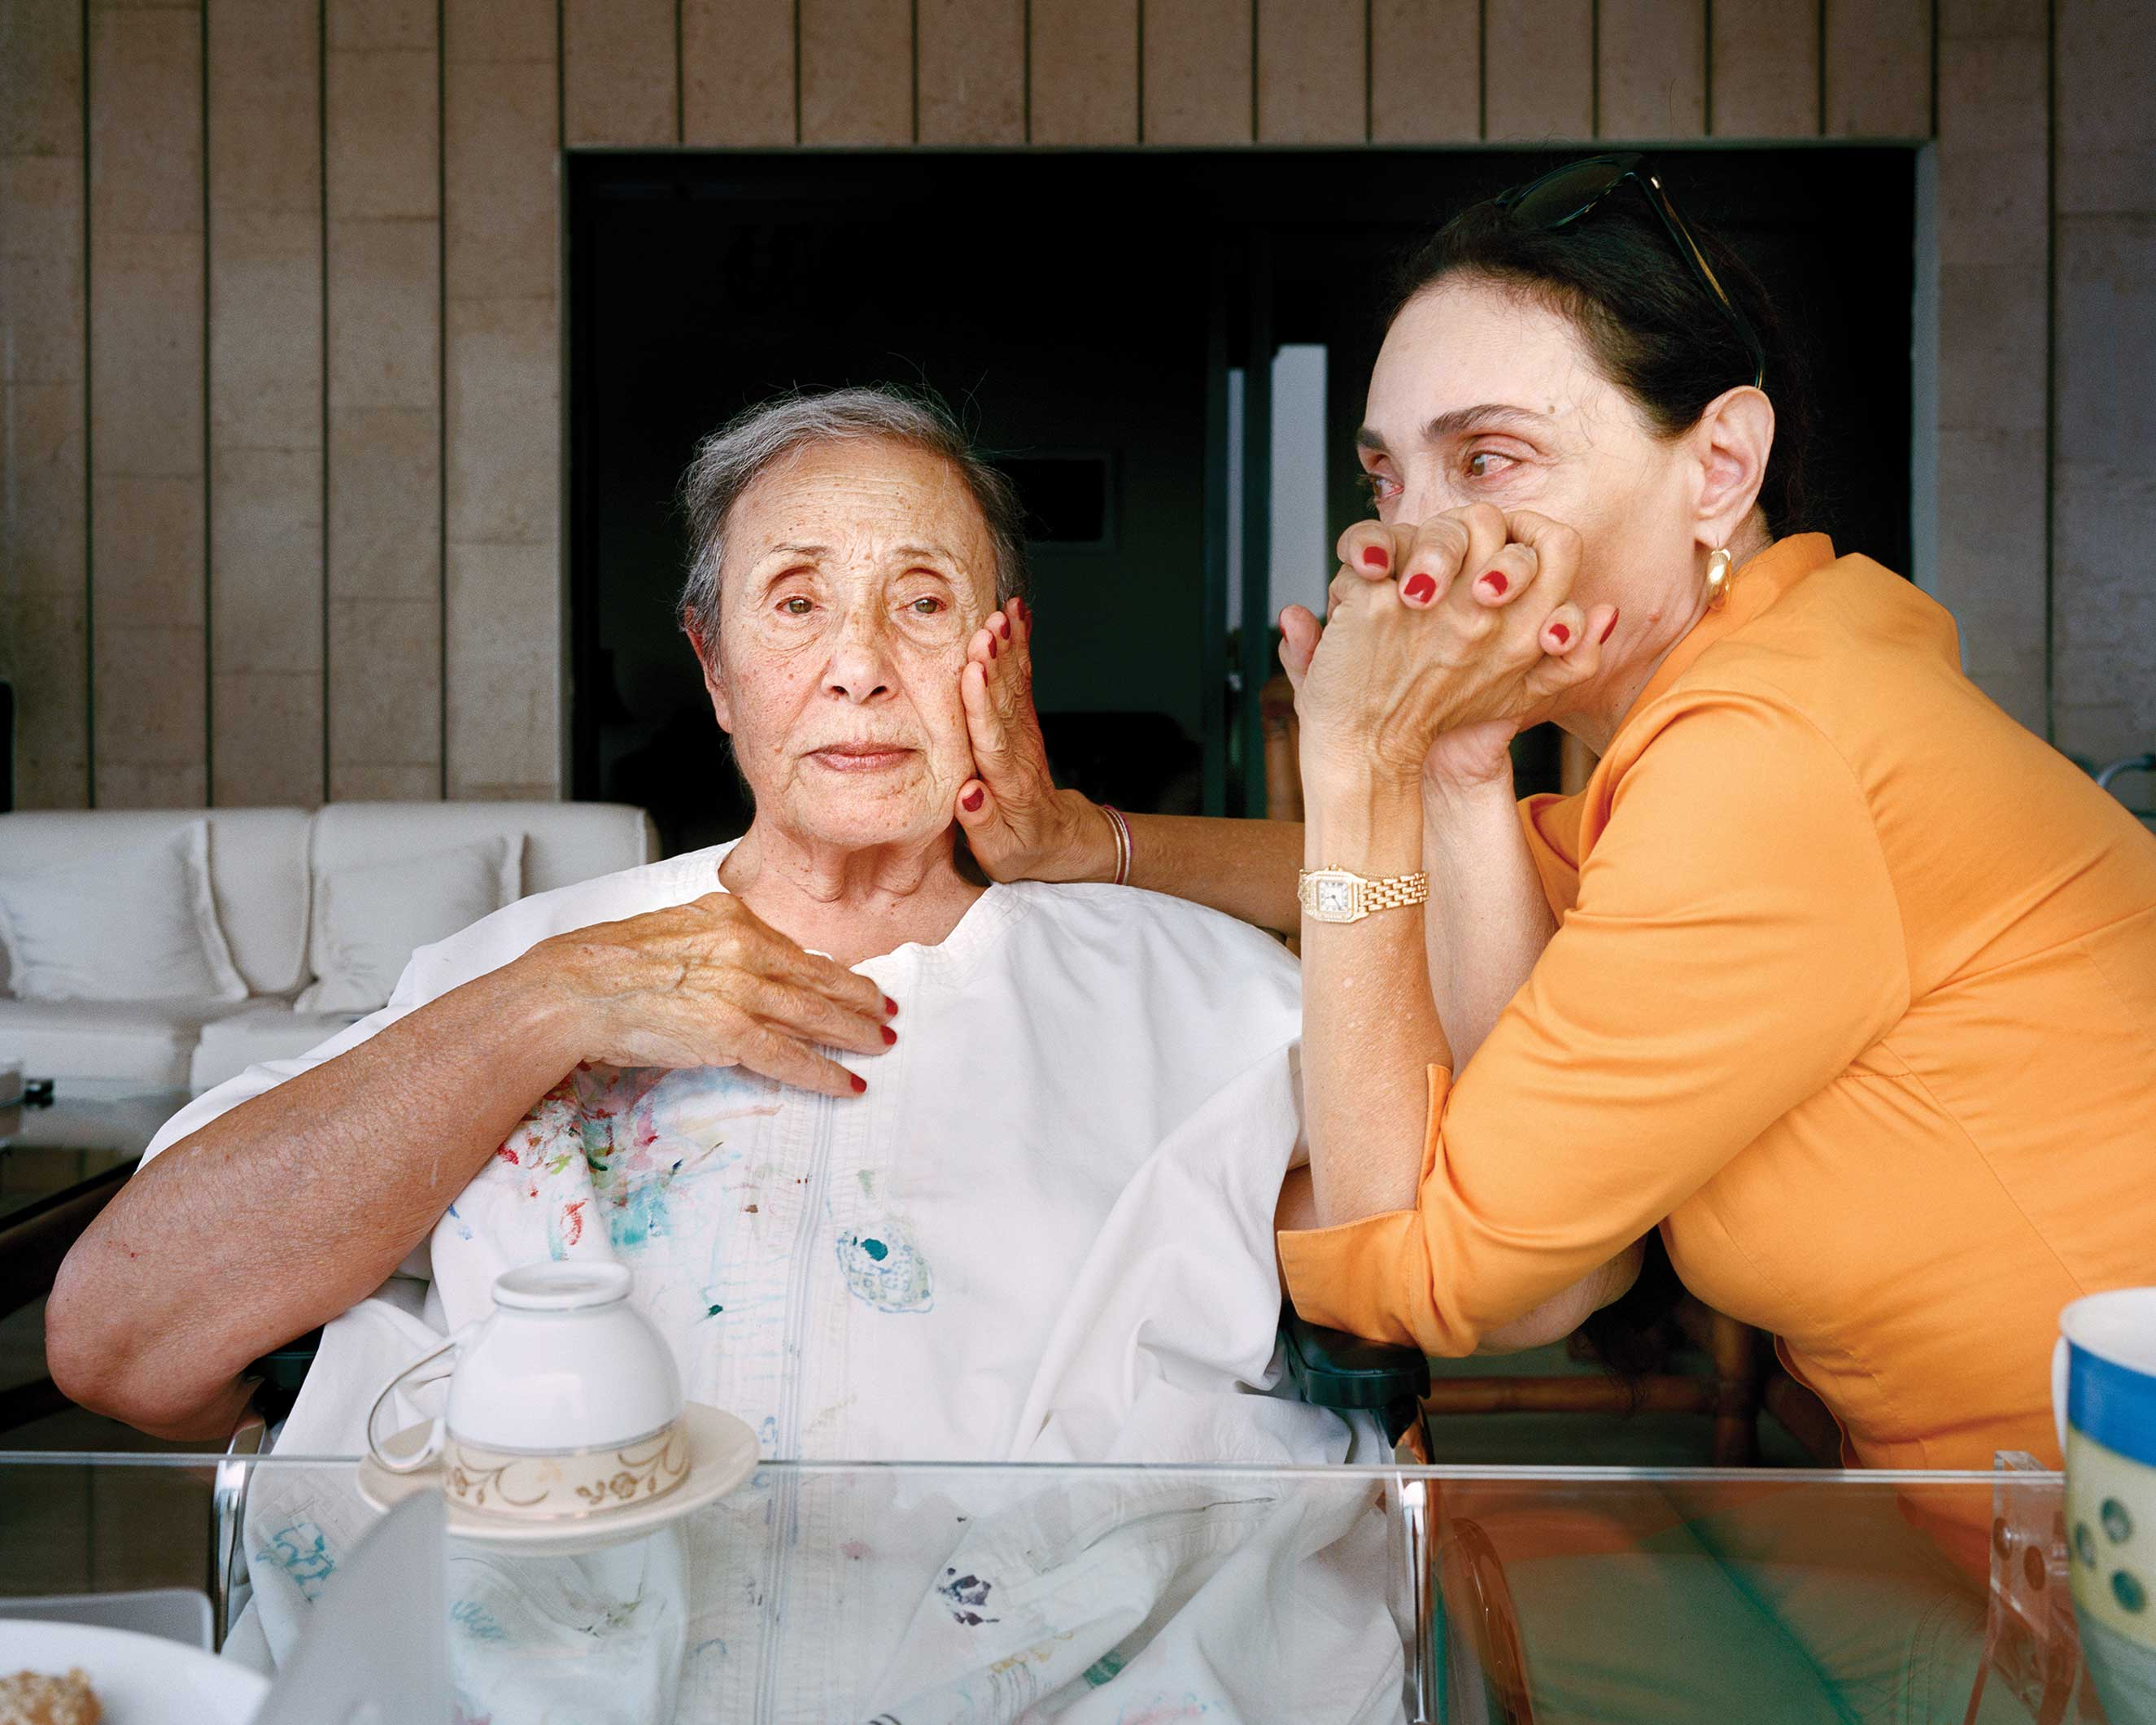 'Brigitte and Huguette, Ghazir Lebanon, 2013' in the series, Unspoken Conversations - Mothers and Daughters.